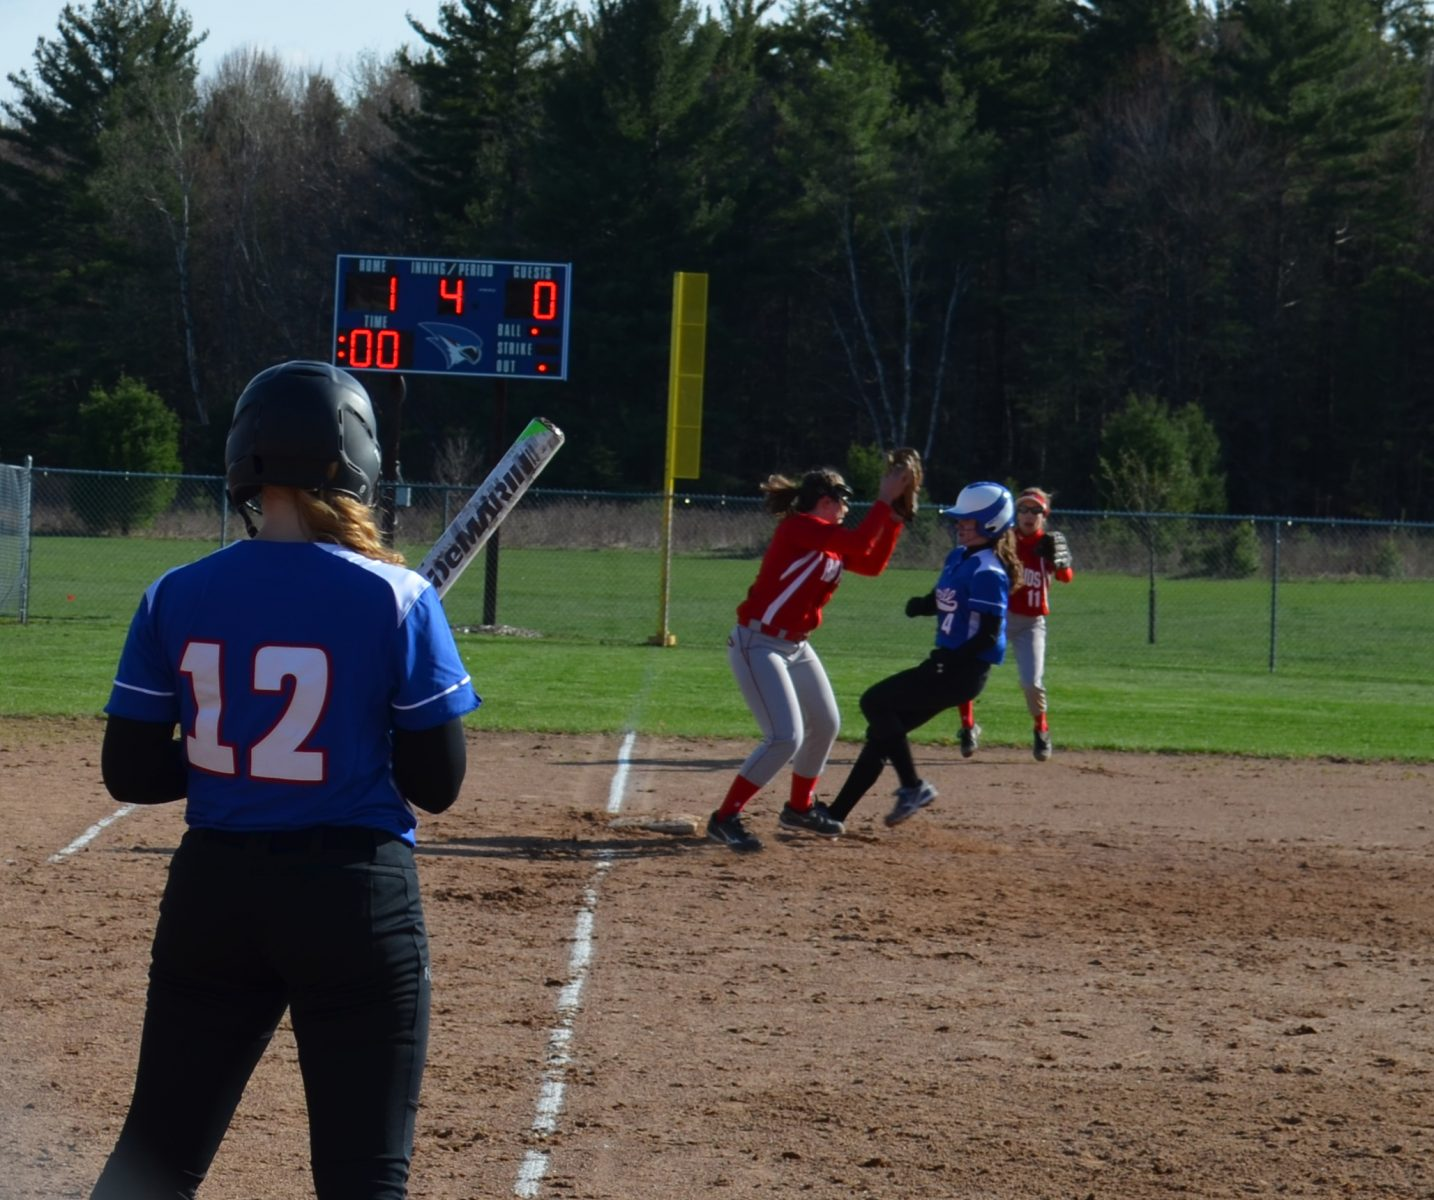 Maddix Bonnell avoids the tag as she steals third base.